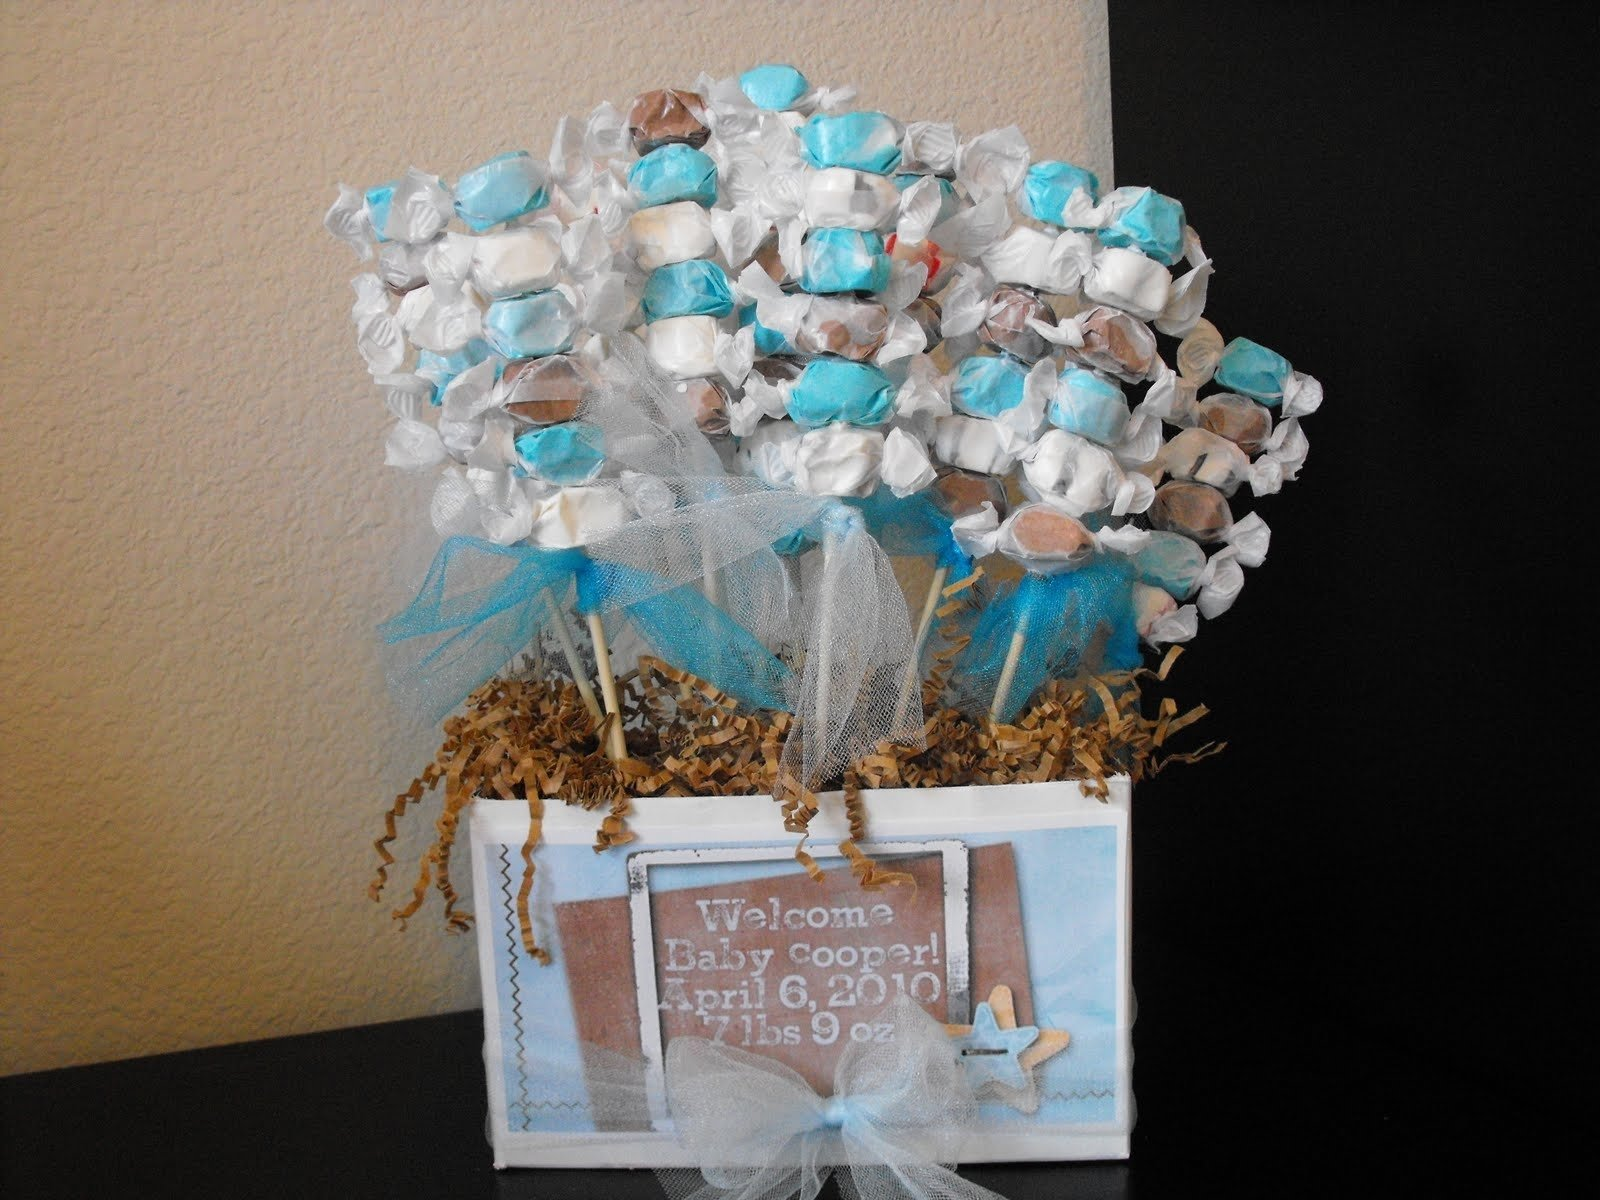 10 Amazing Baby Boy Shower Favors Ideas baby shower favors ideas for boys omega center ideas for baby 1